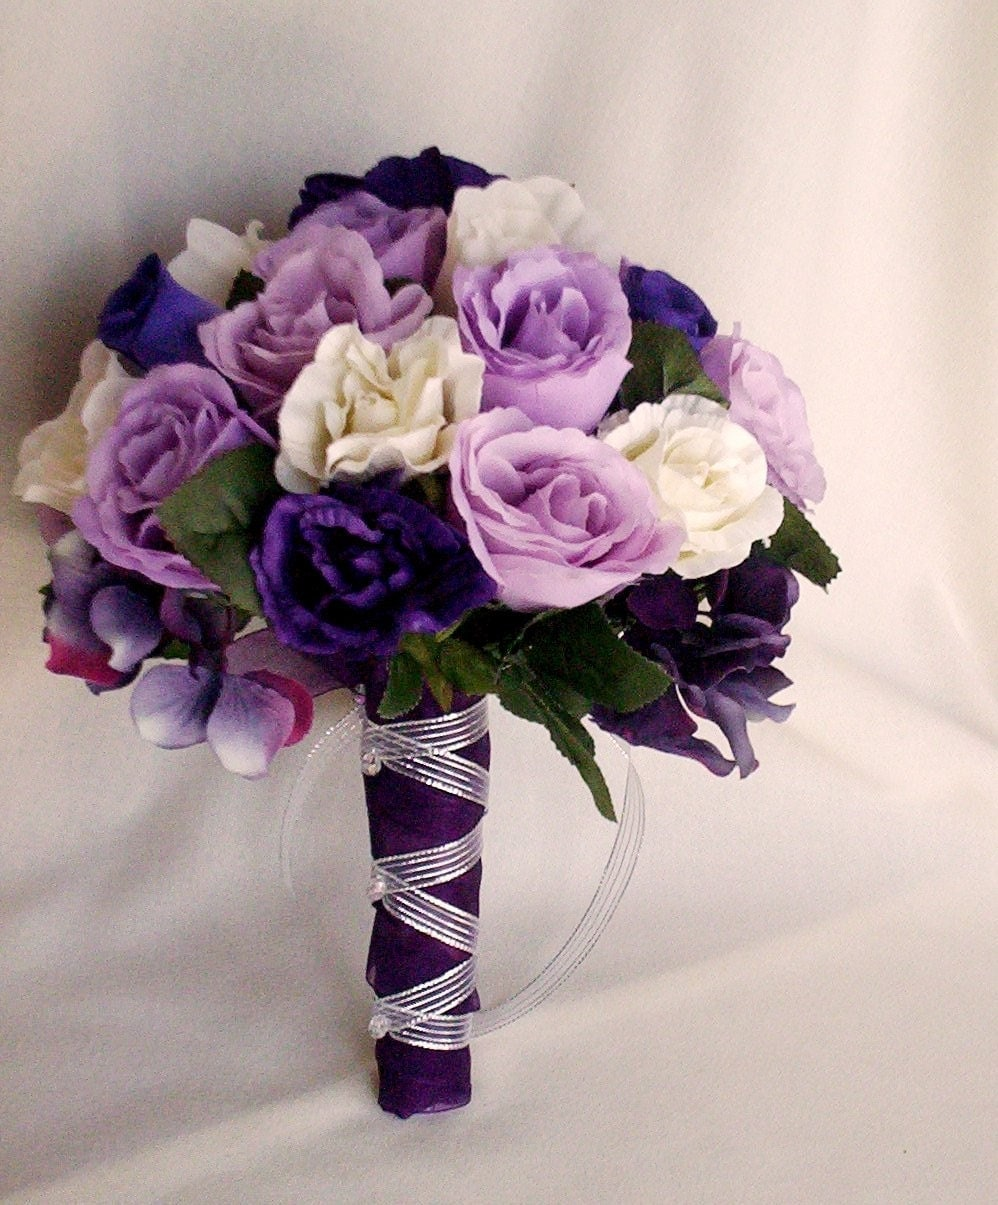 Flower Wedding Bouquet: Silk Purple Rose Bridal Bouquets Package Custom For Helen